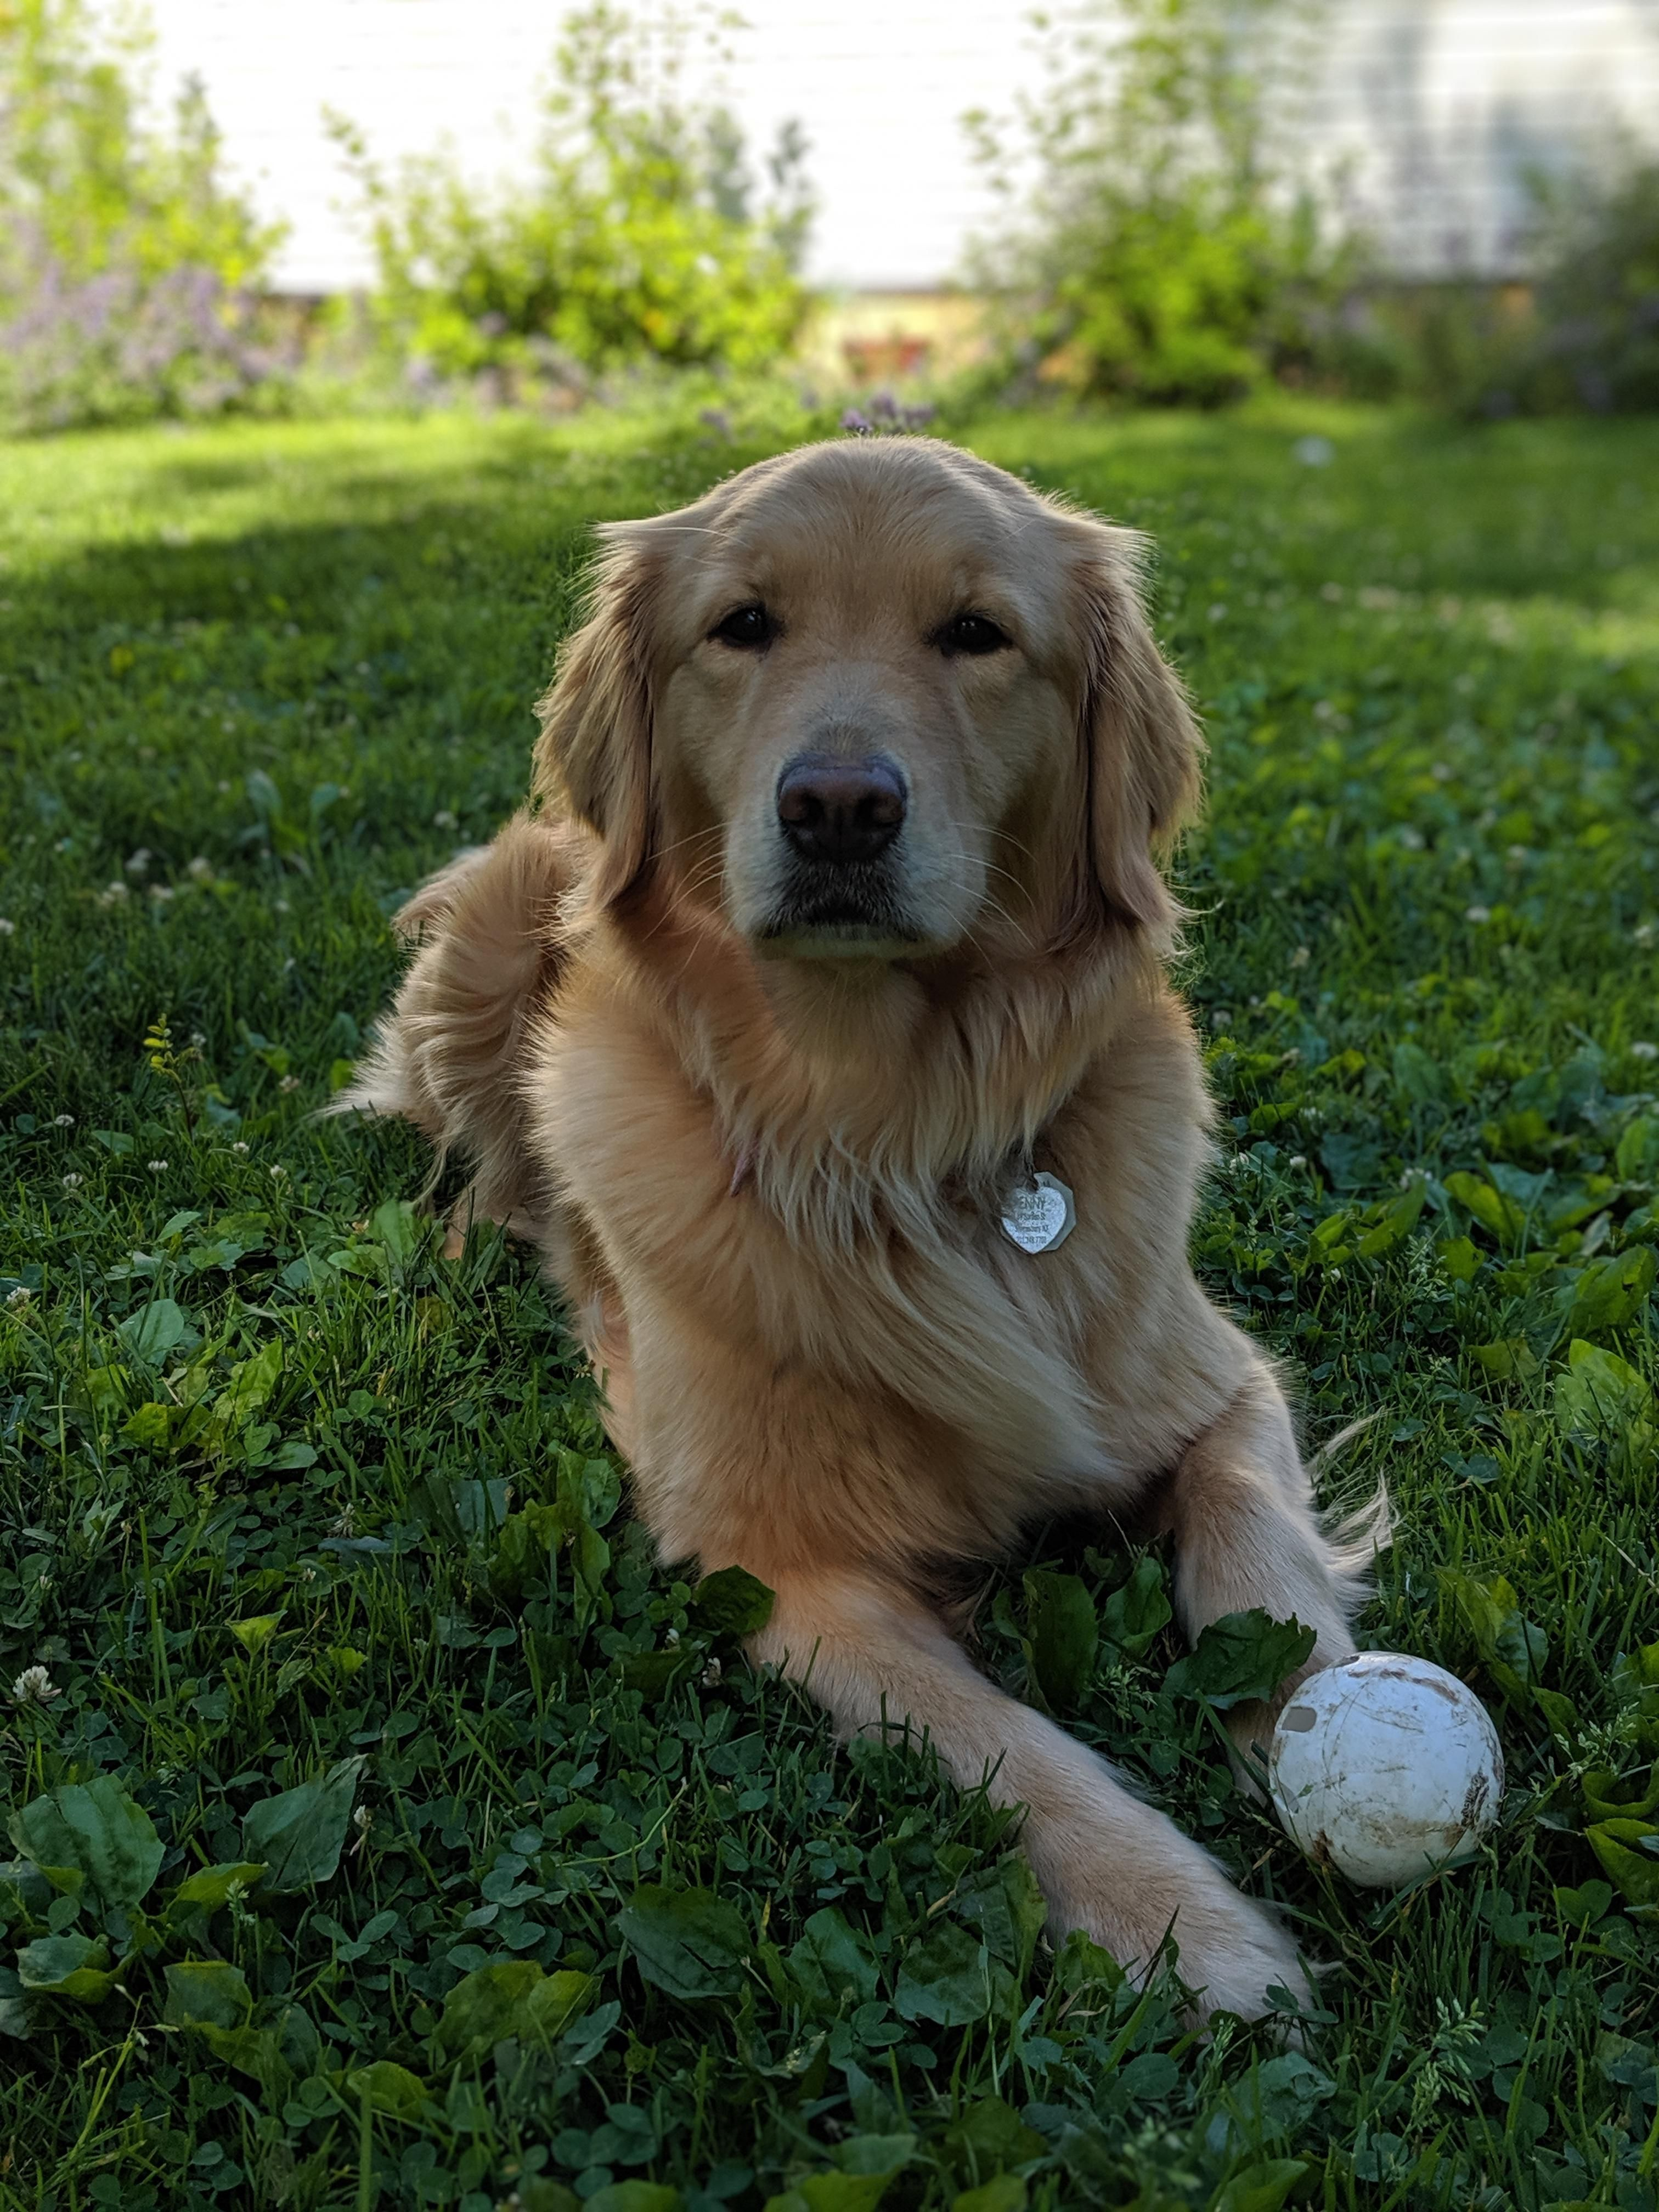 Penny And Her Ball With Images Dogs Golden Retriever Dog